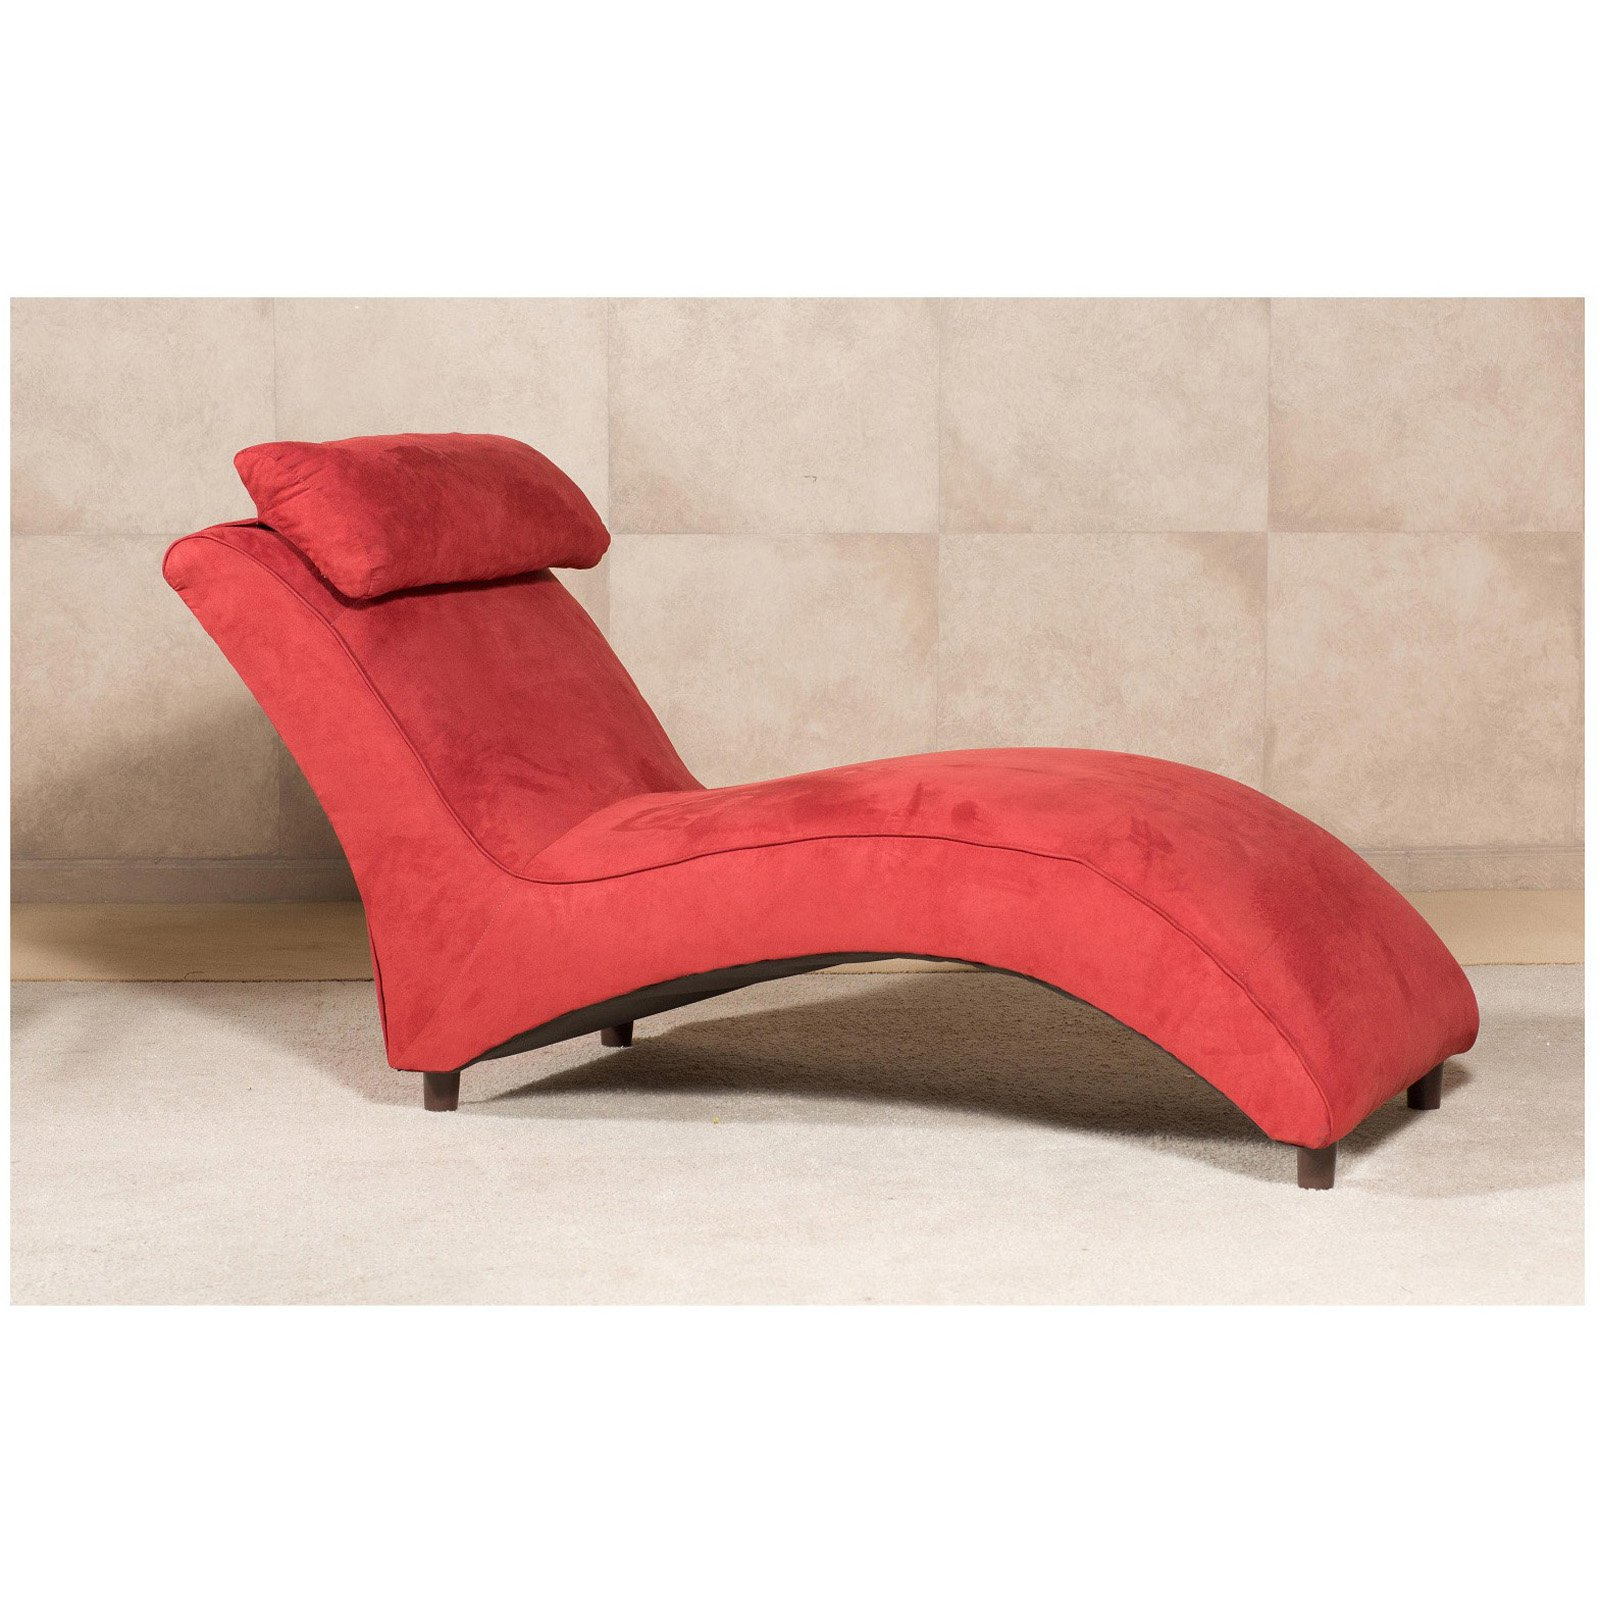 Chelsea Home Maynard Indoor Chaise Lounge